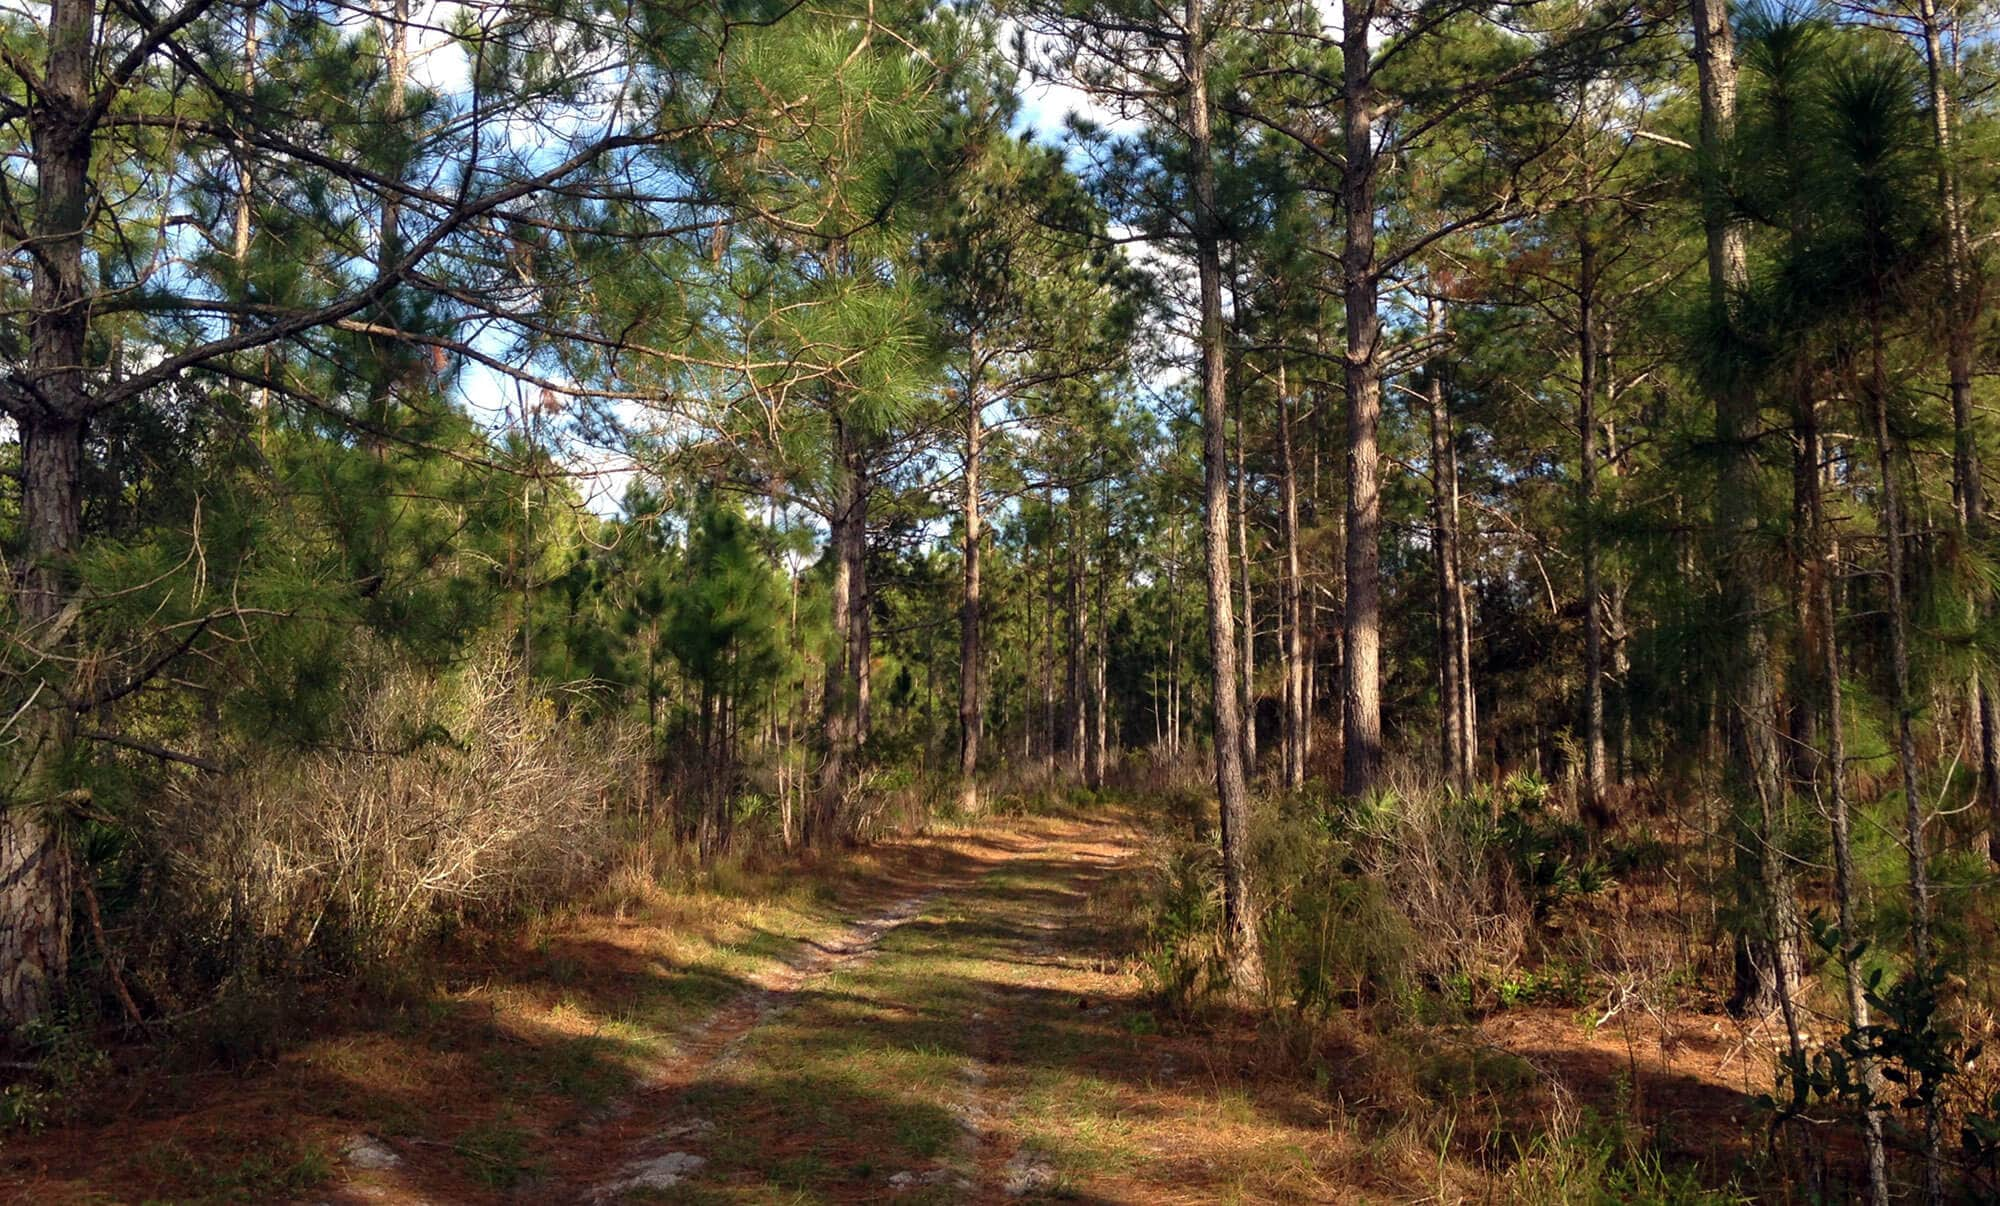 Pine covered path through East Tract at Green Swamp Wilderness Preserve in Lakeland, FL